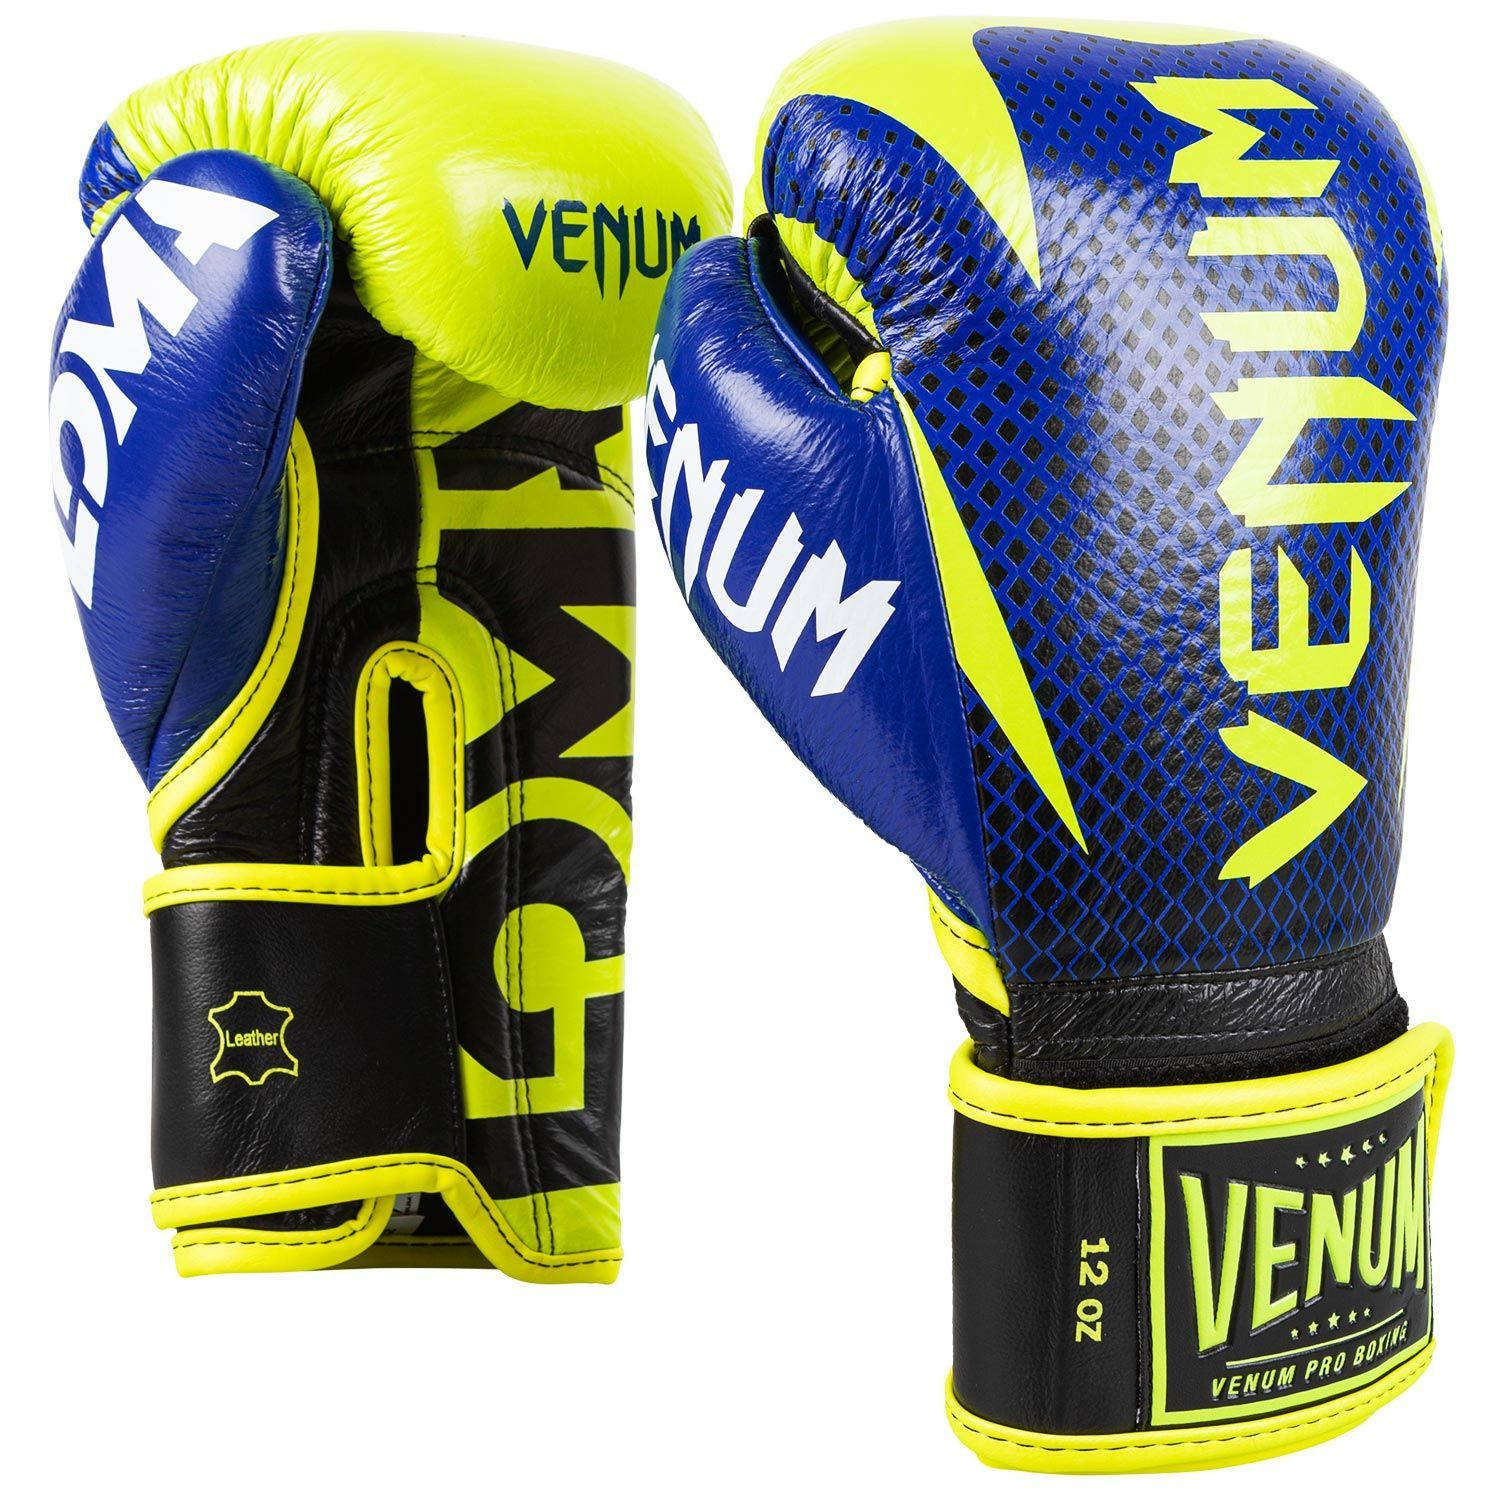 Venum Hammer Pro Boxing Gloves - LOMA Edition